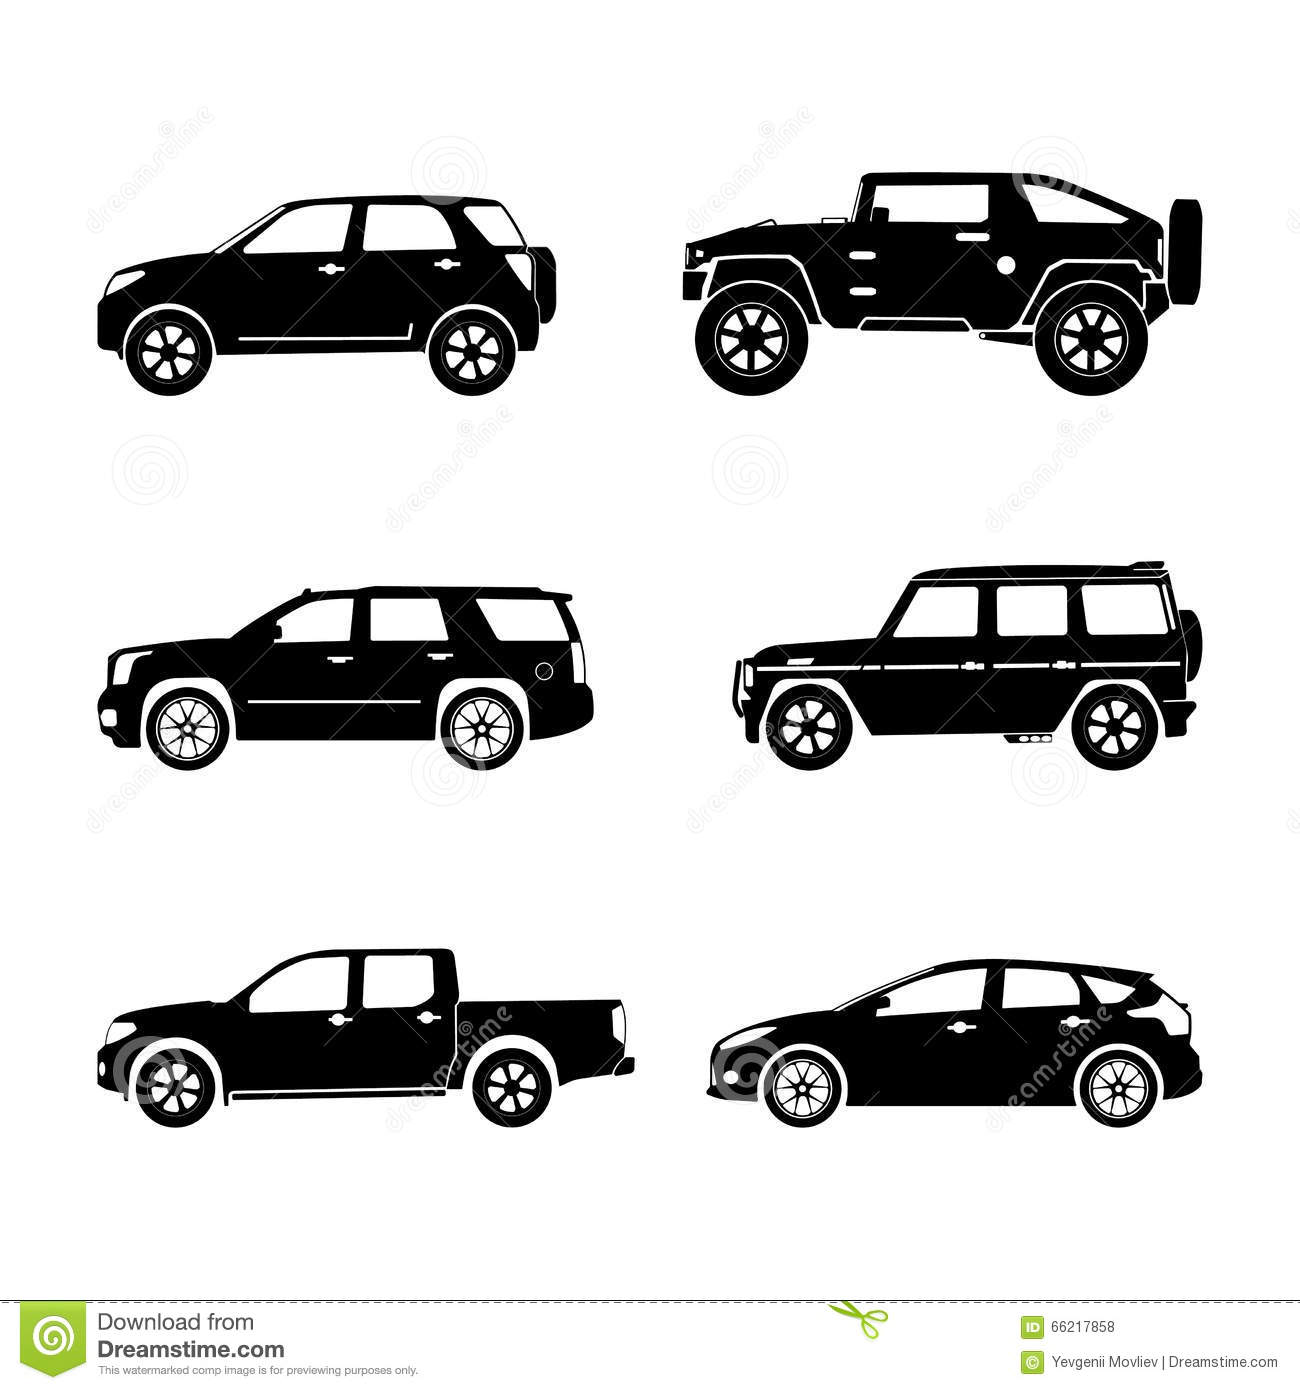 Free Printable Lightning Mcqueen Coloring Pages Kids furthermore Very Easy Car To Draw For Little Kids additionally Ford F250 Lifted 2014 moreover Hat And Scarf In Winter Season Coloring Page also Mini Cooper 2001. on old black and white police car